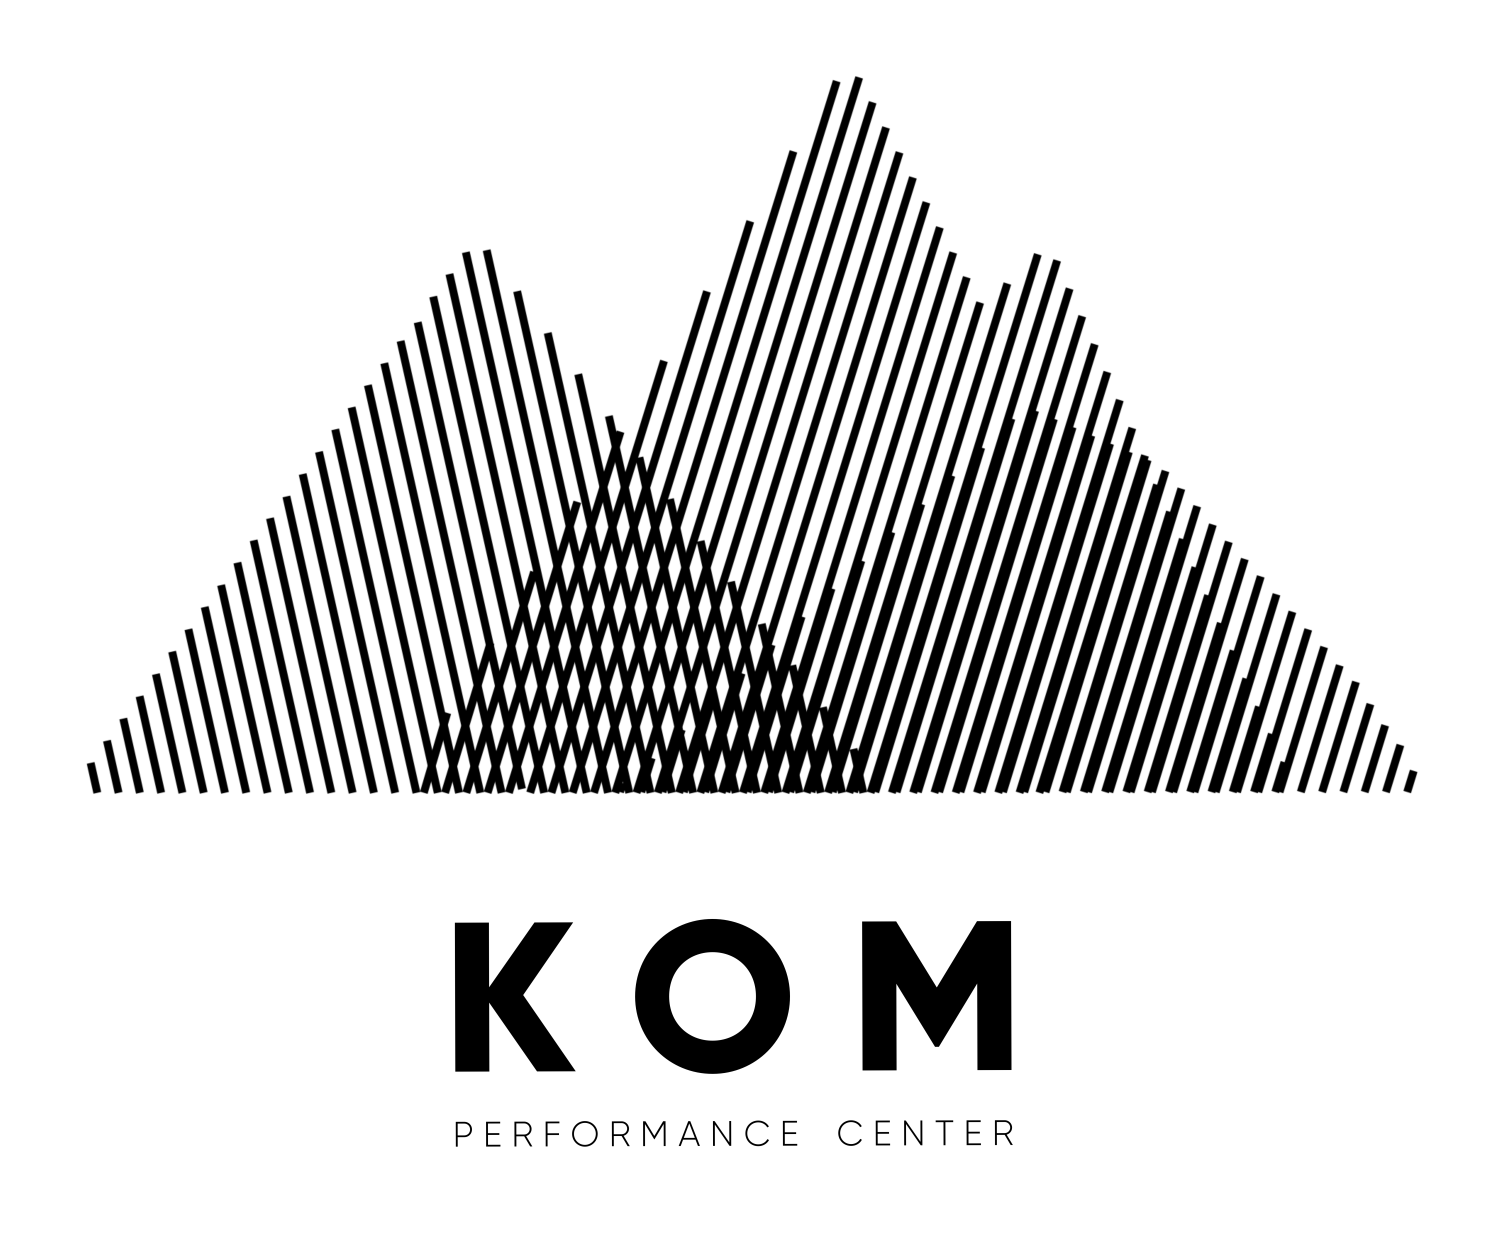 KOM Performance Center